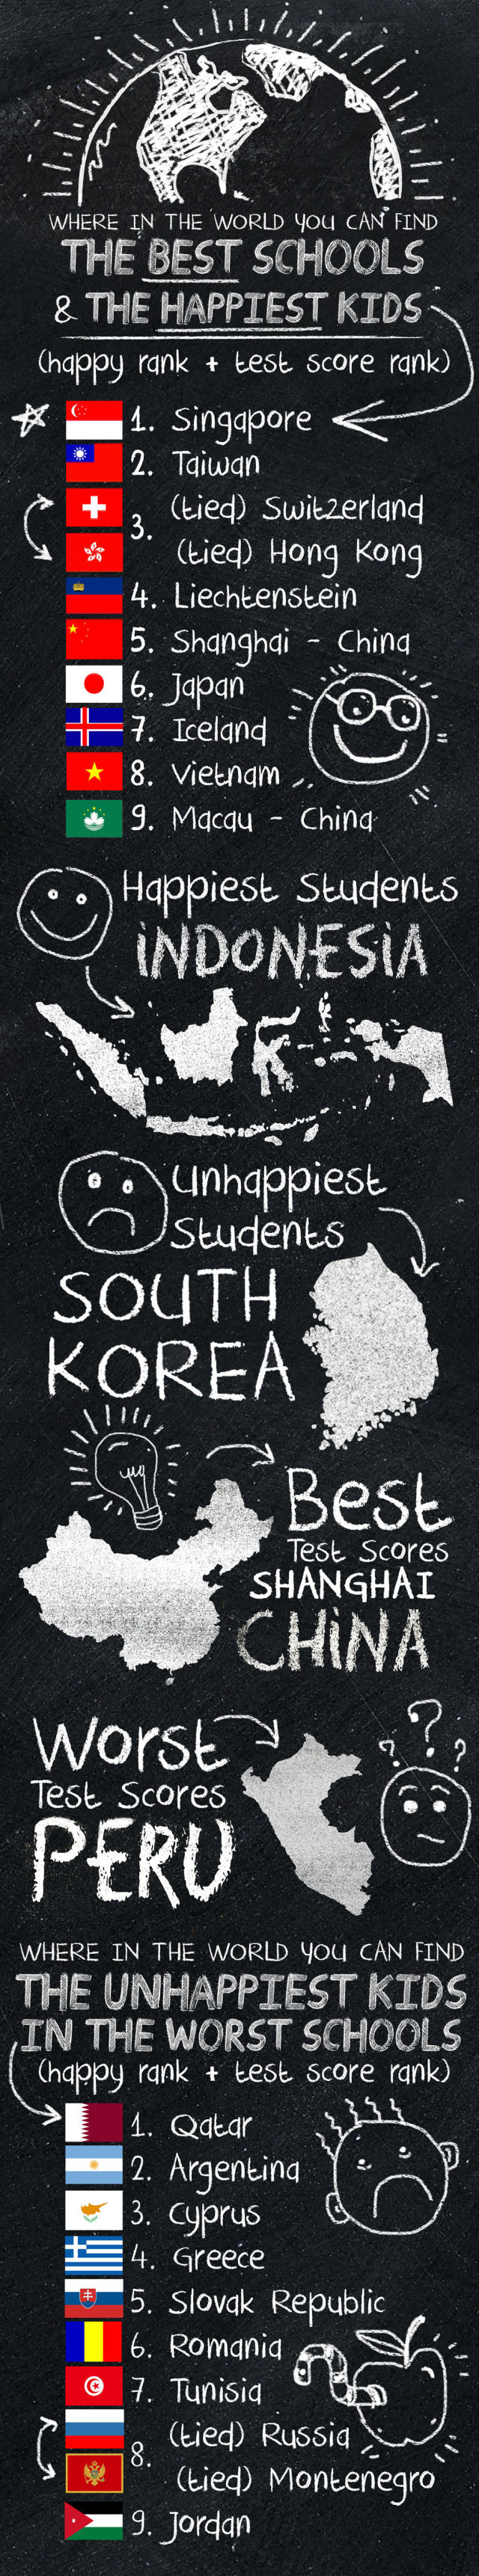 The World's Best Schools and Happiest Kids